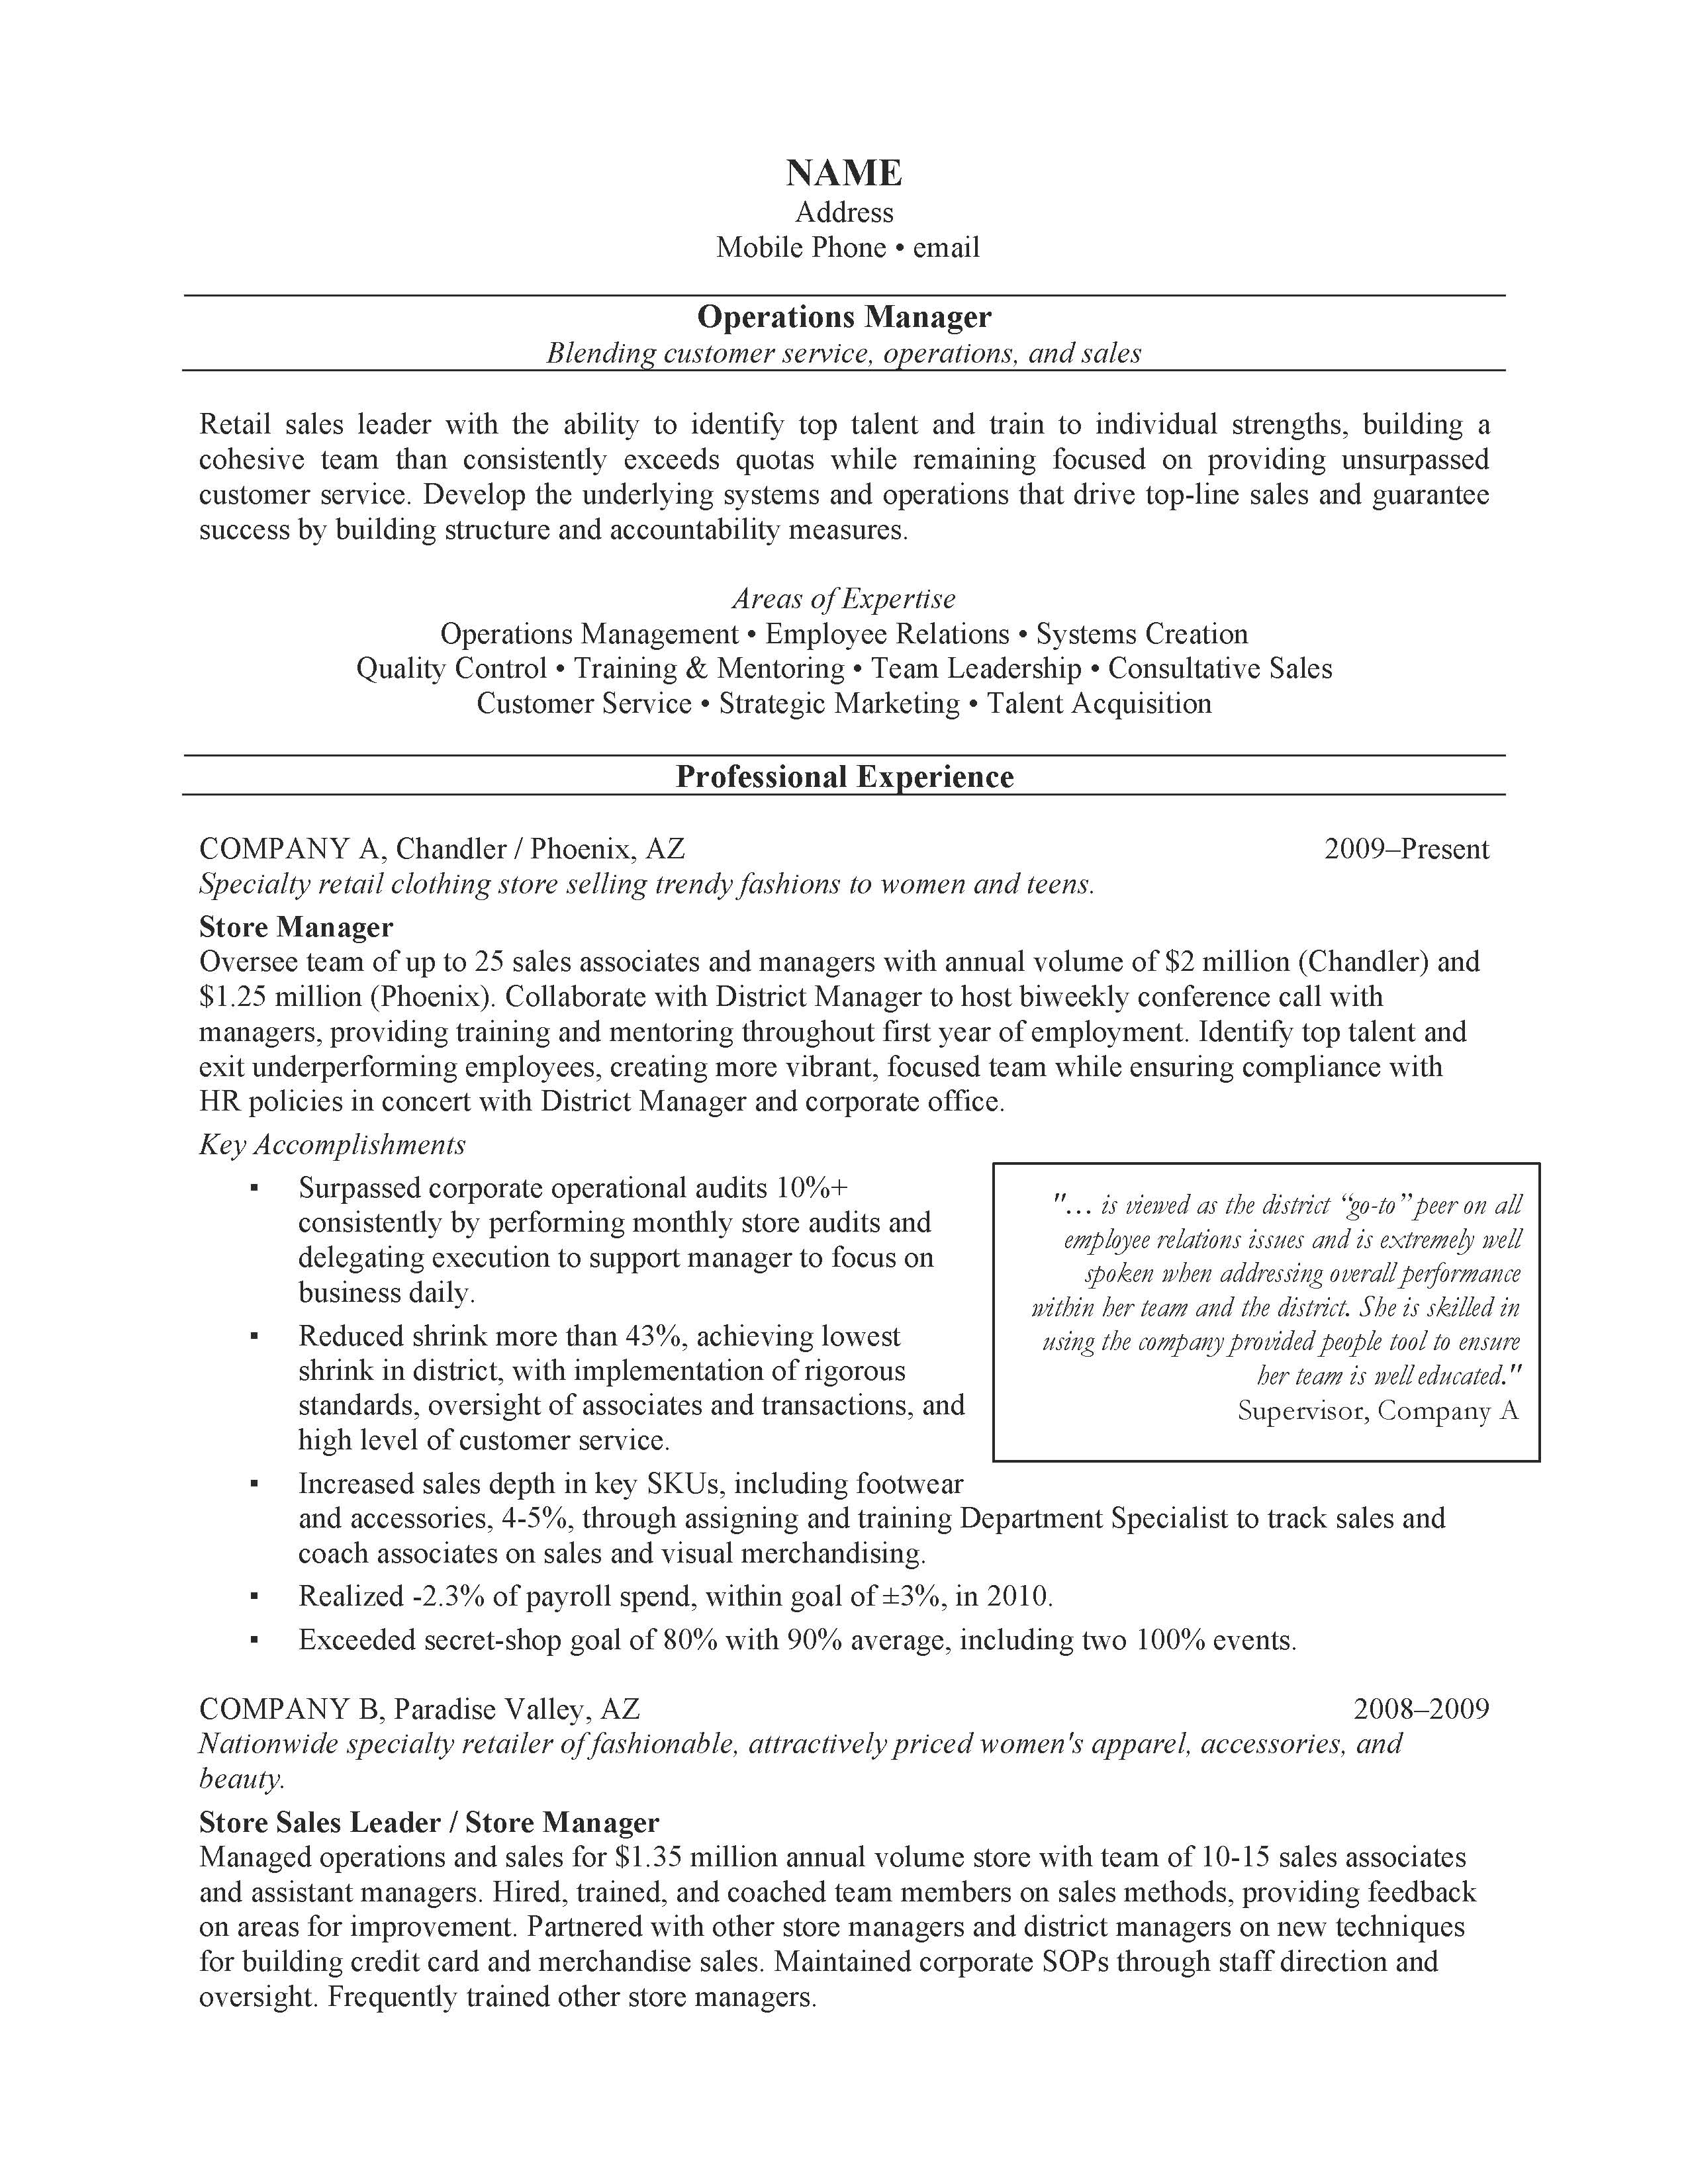 Job Accomplishments For Resume Accomplishments Are Key To Not Only A Great Resume But The